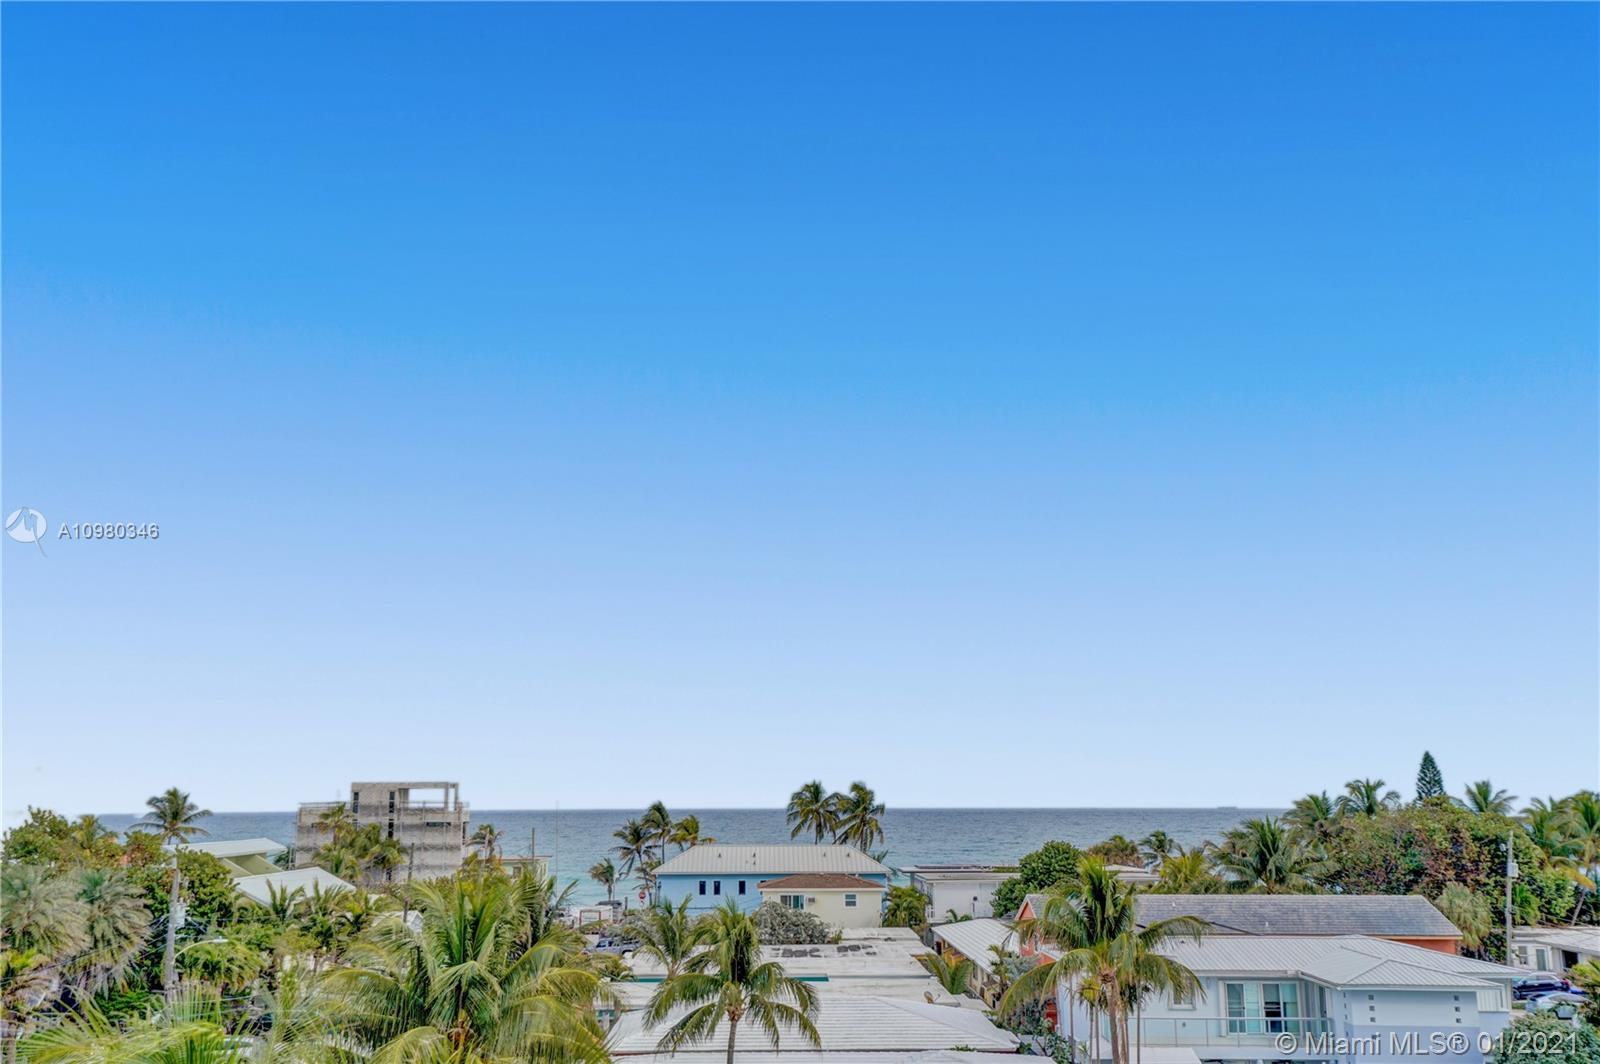 Oceanview from your rooftop deck.